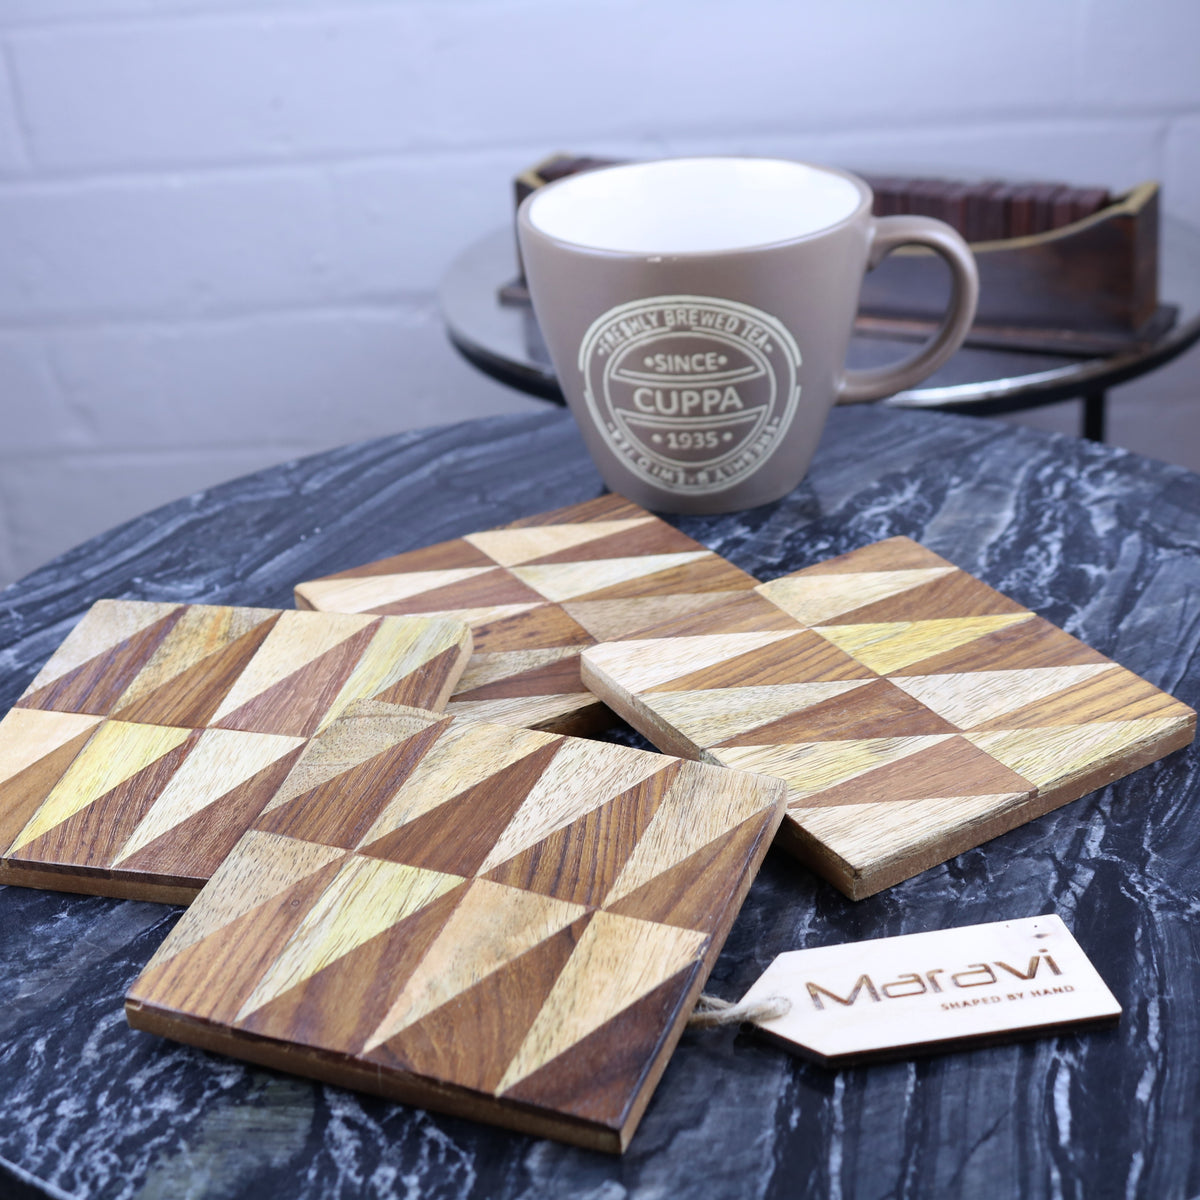 Soneli Set of 4 Wooden Inlay Coasters - 4 Designs